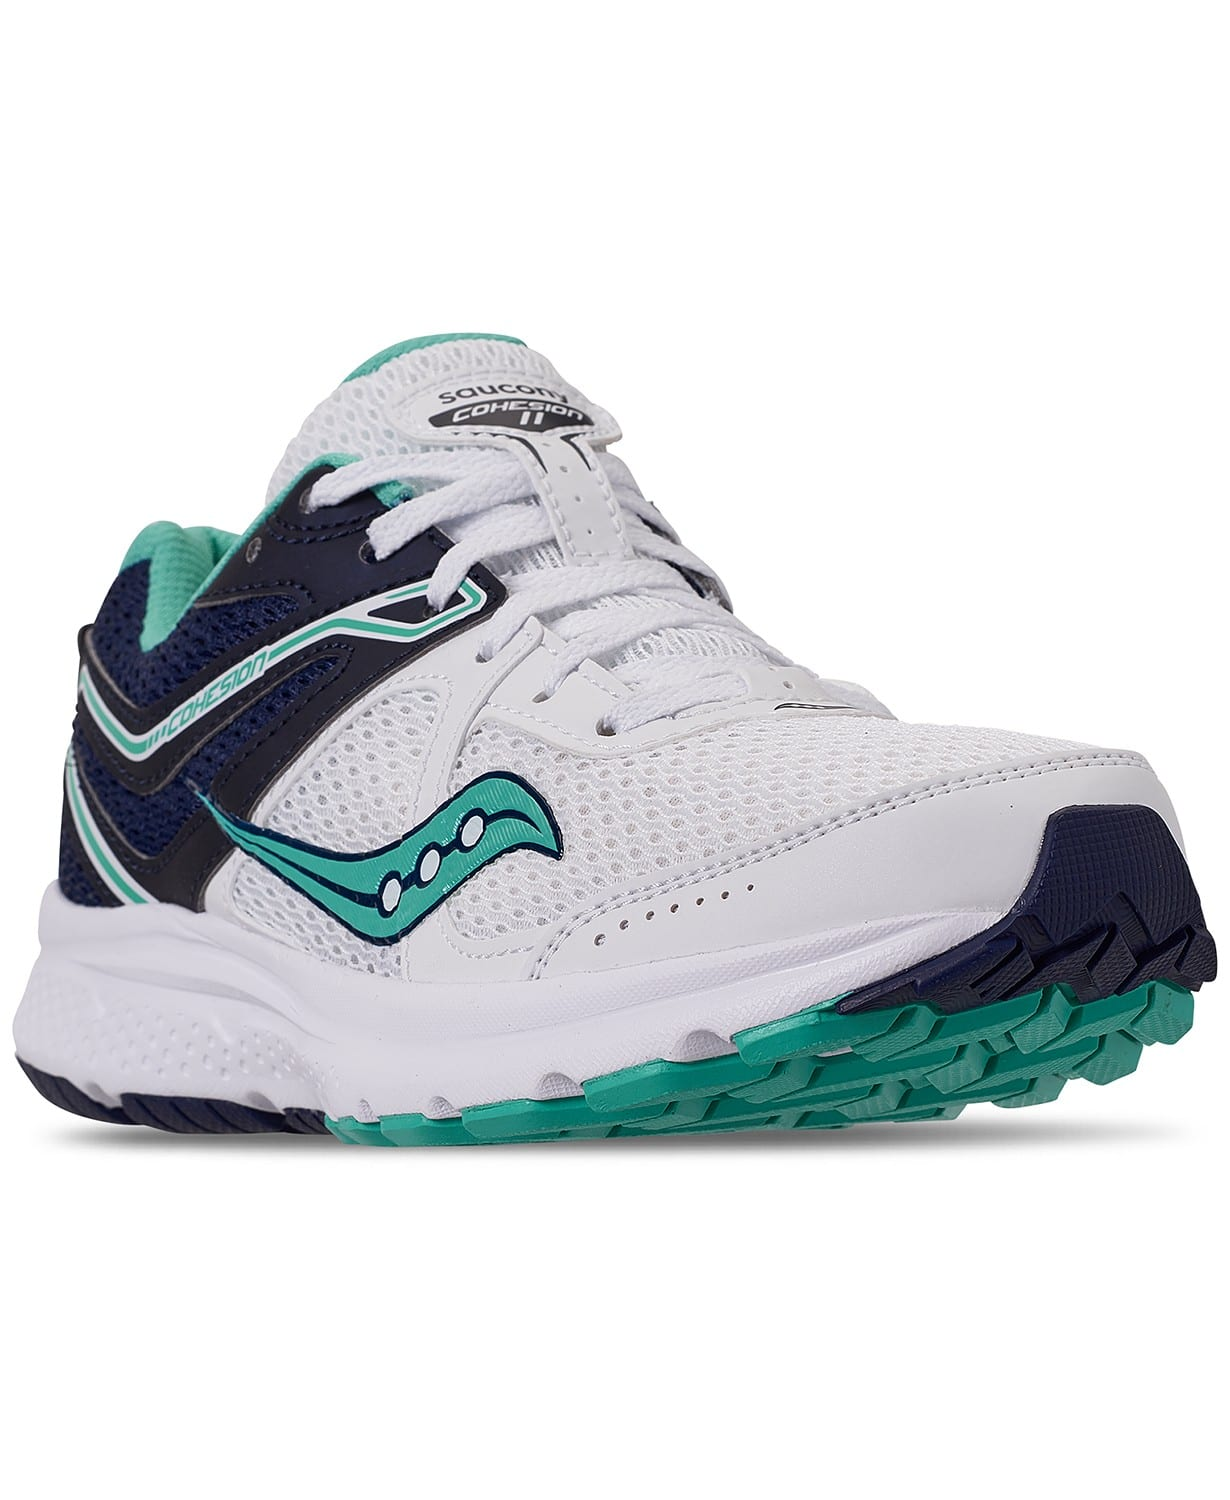 1d8da32f9447 Saucony Women s Cohesion 11 Running Sneakers  25 + free store pickup at  Macys